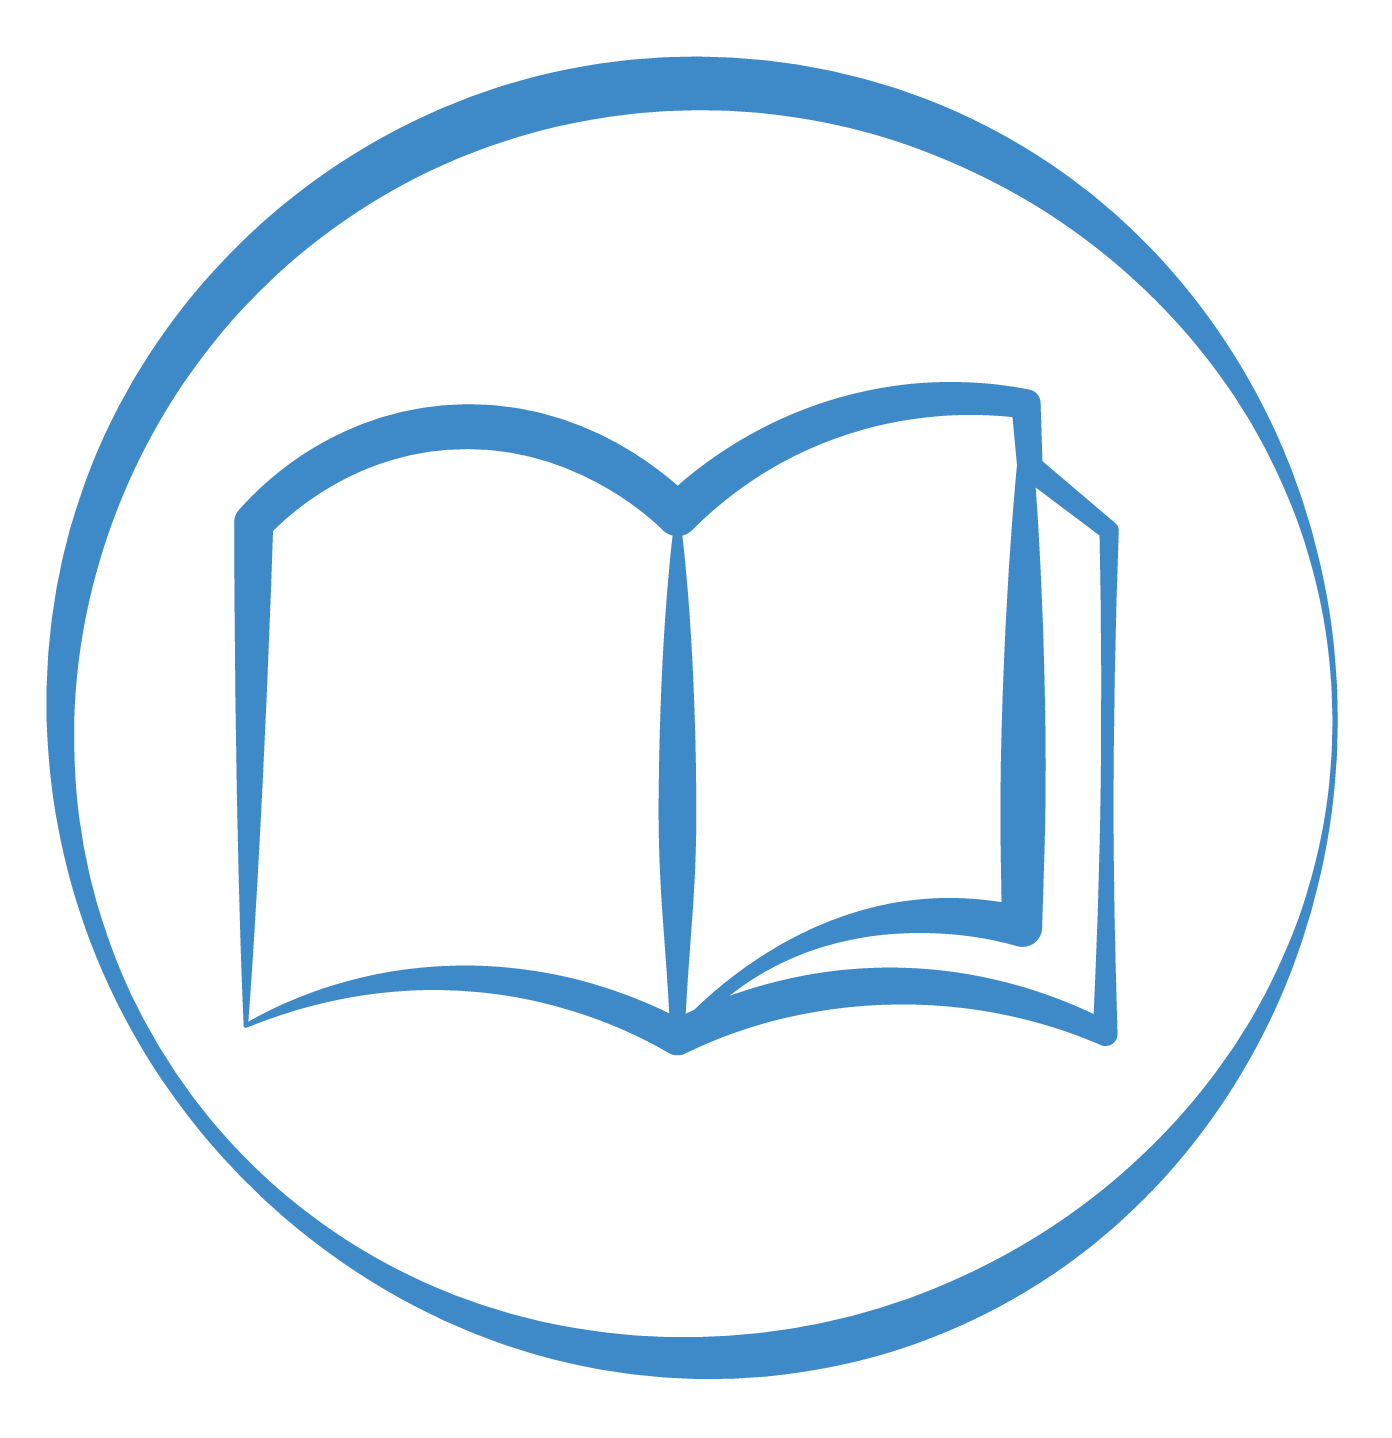 book icon circle-07.png